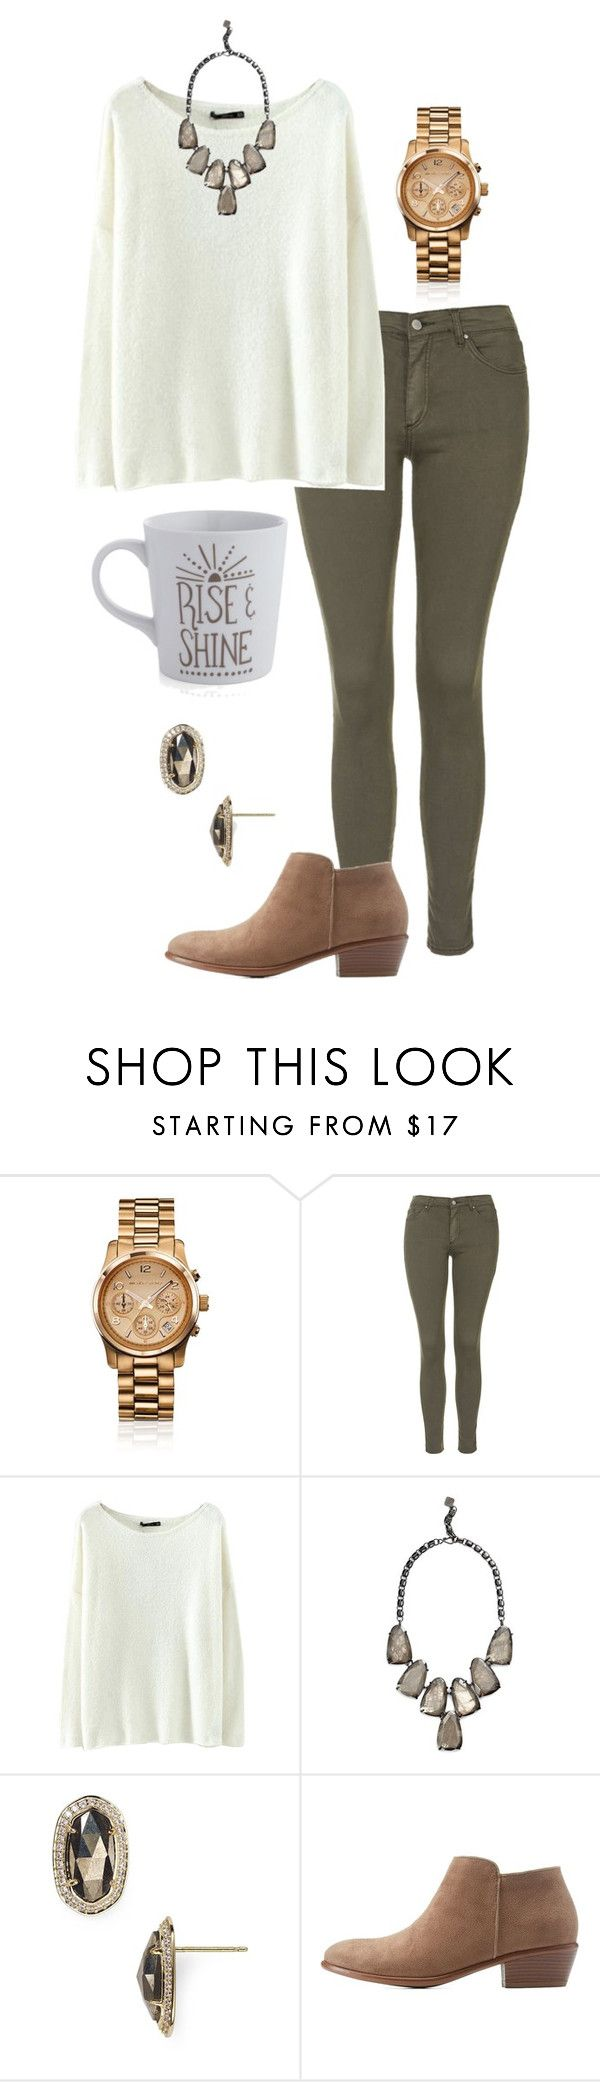 """""""Rise and shine sleepy head ☺️☀️"""" by madelyn-abigail ❤ liked on Polyvore featuring Michael Kors, Topshop, Kendra Scott, Charlotte Russe and Crate and Barrel"""